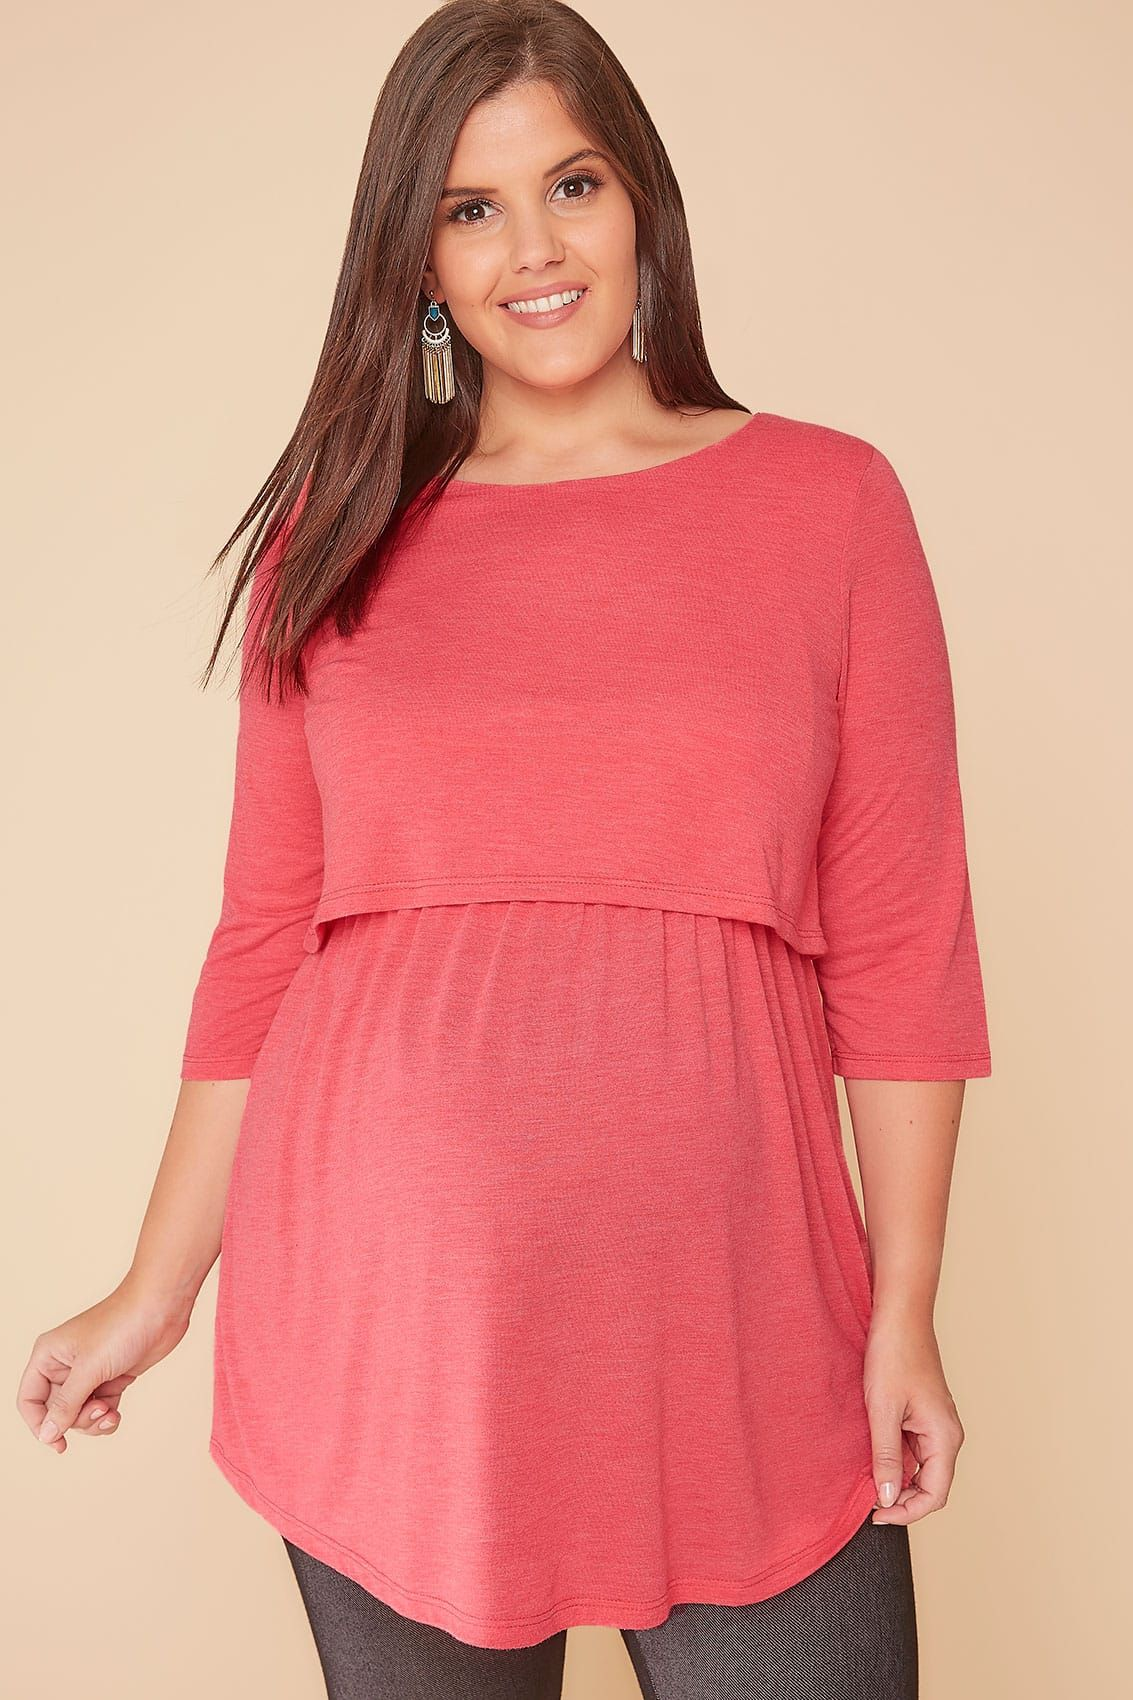 949eb3183f1 BUMP IT UP MATERNITY Coral Layered Tunic Top With Nursing Function ...